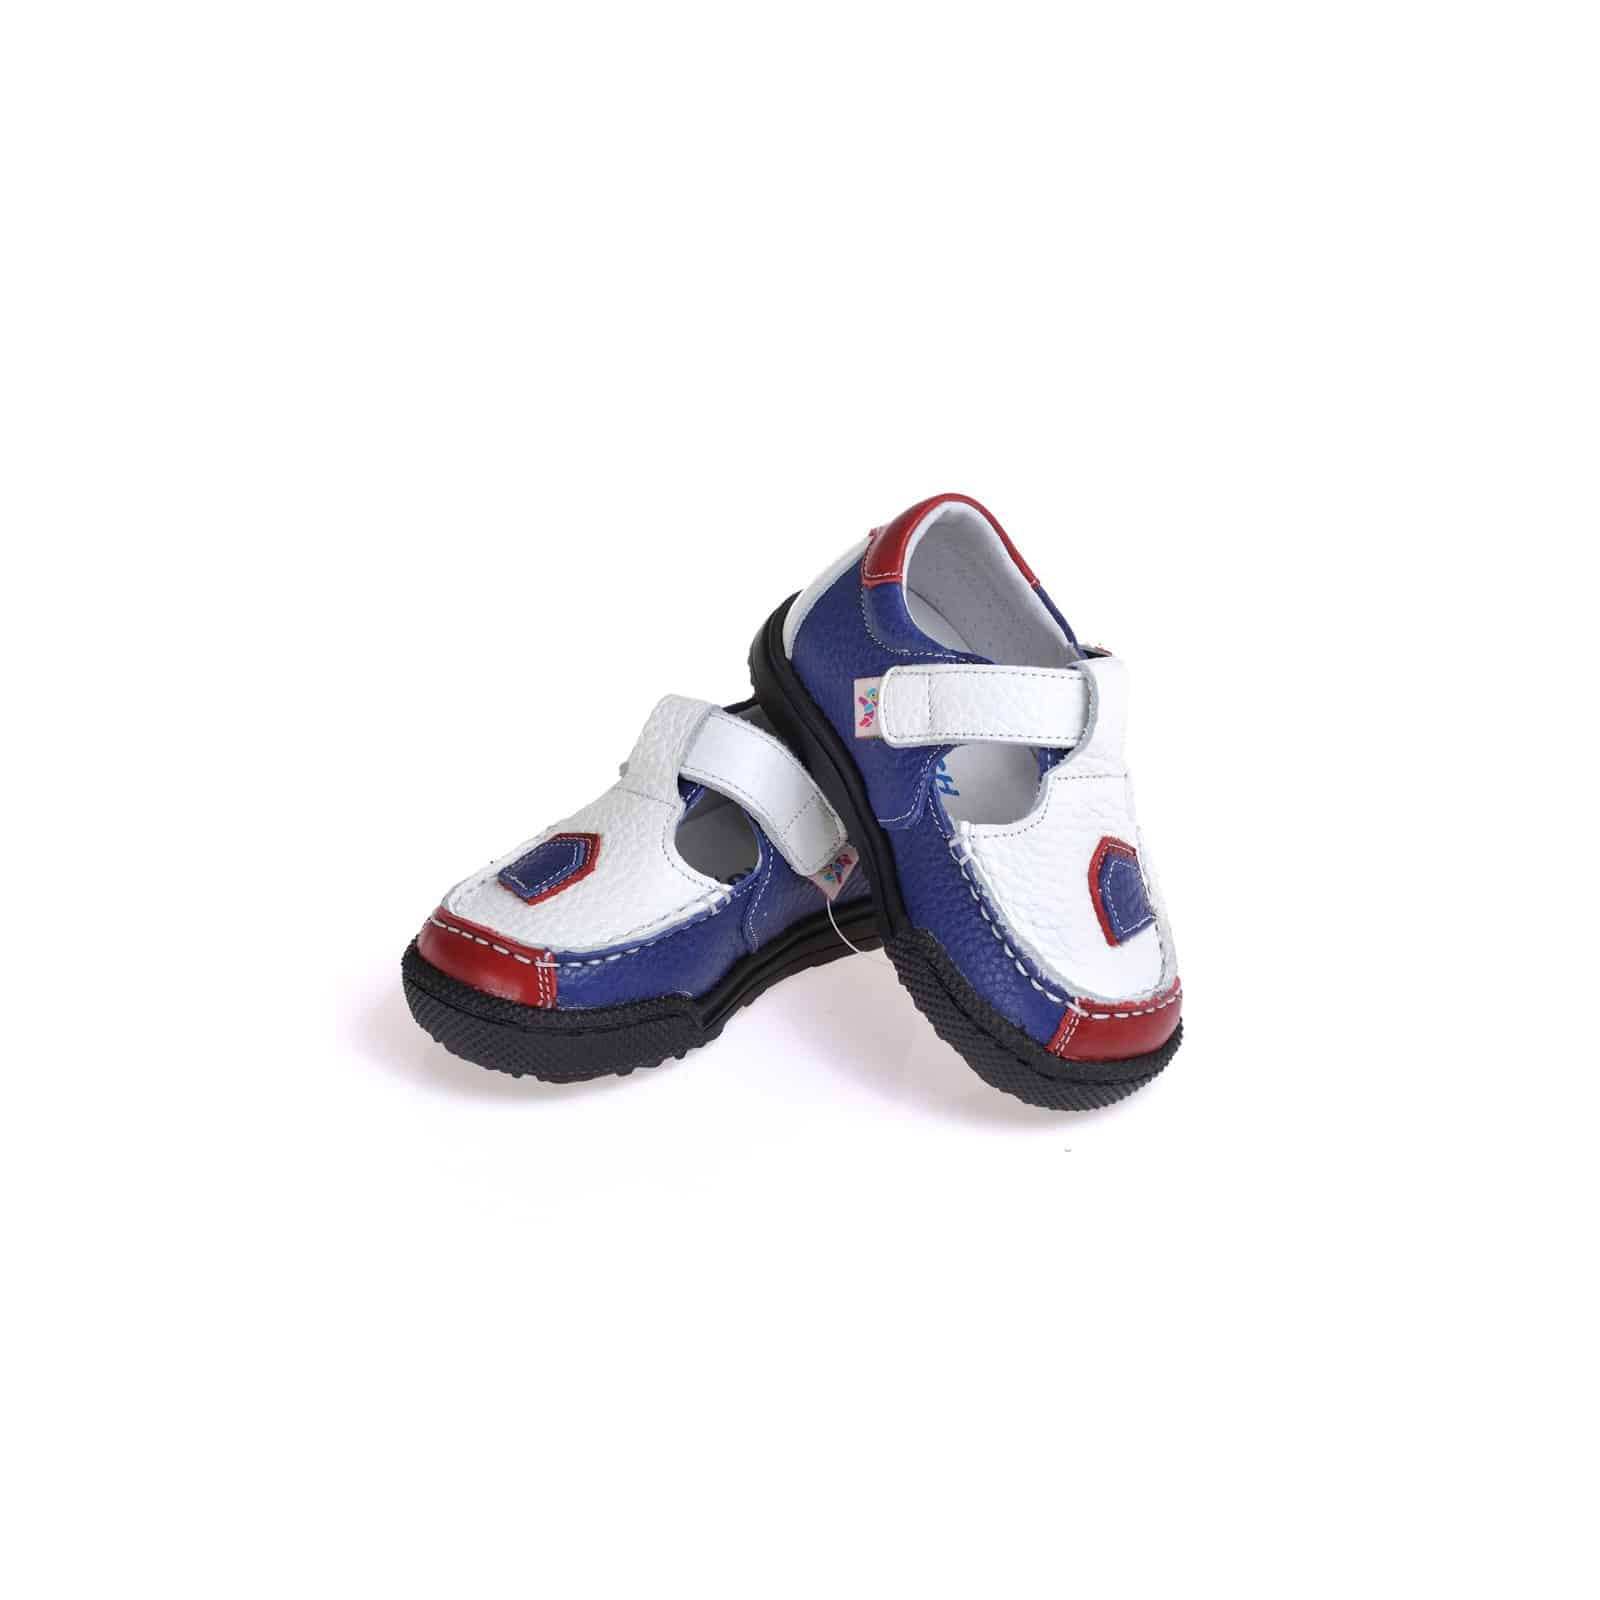 Soft Sole Baby Shoes Size